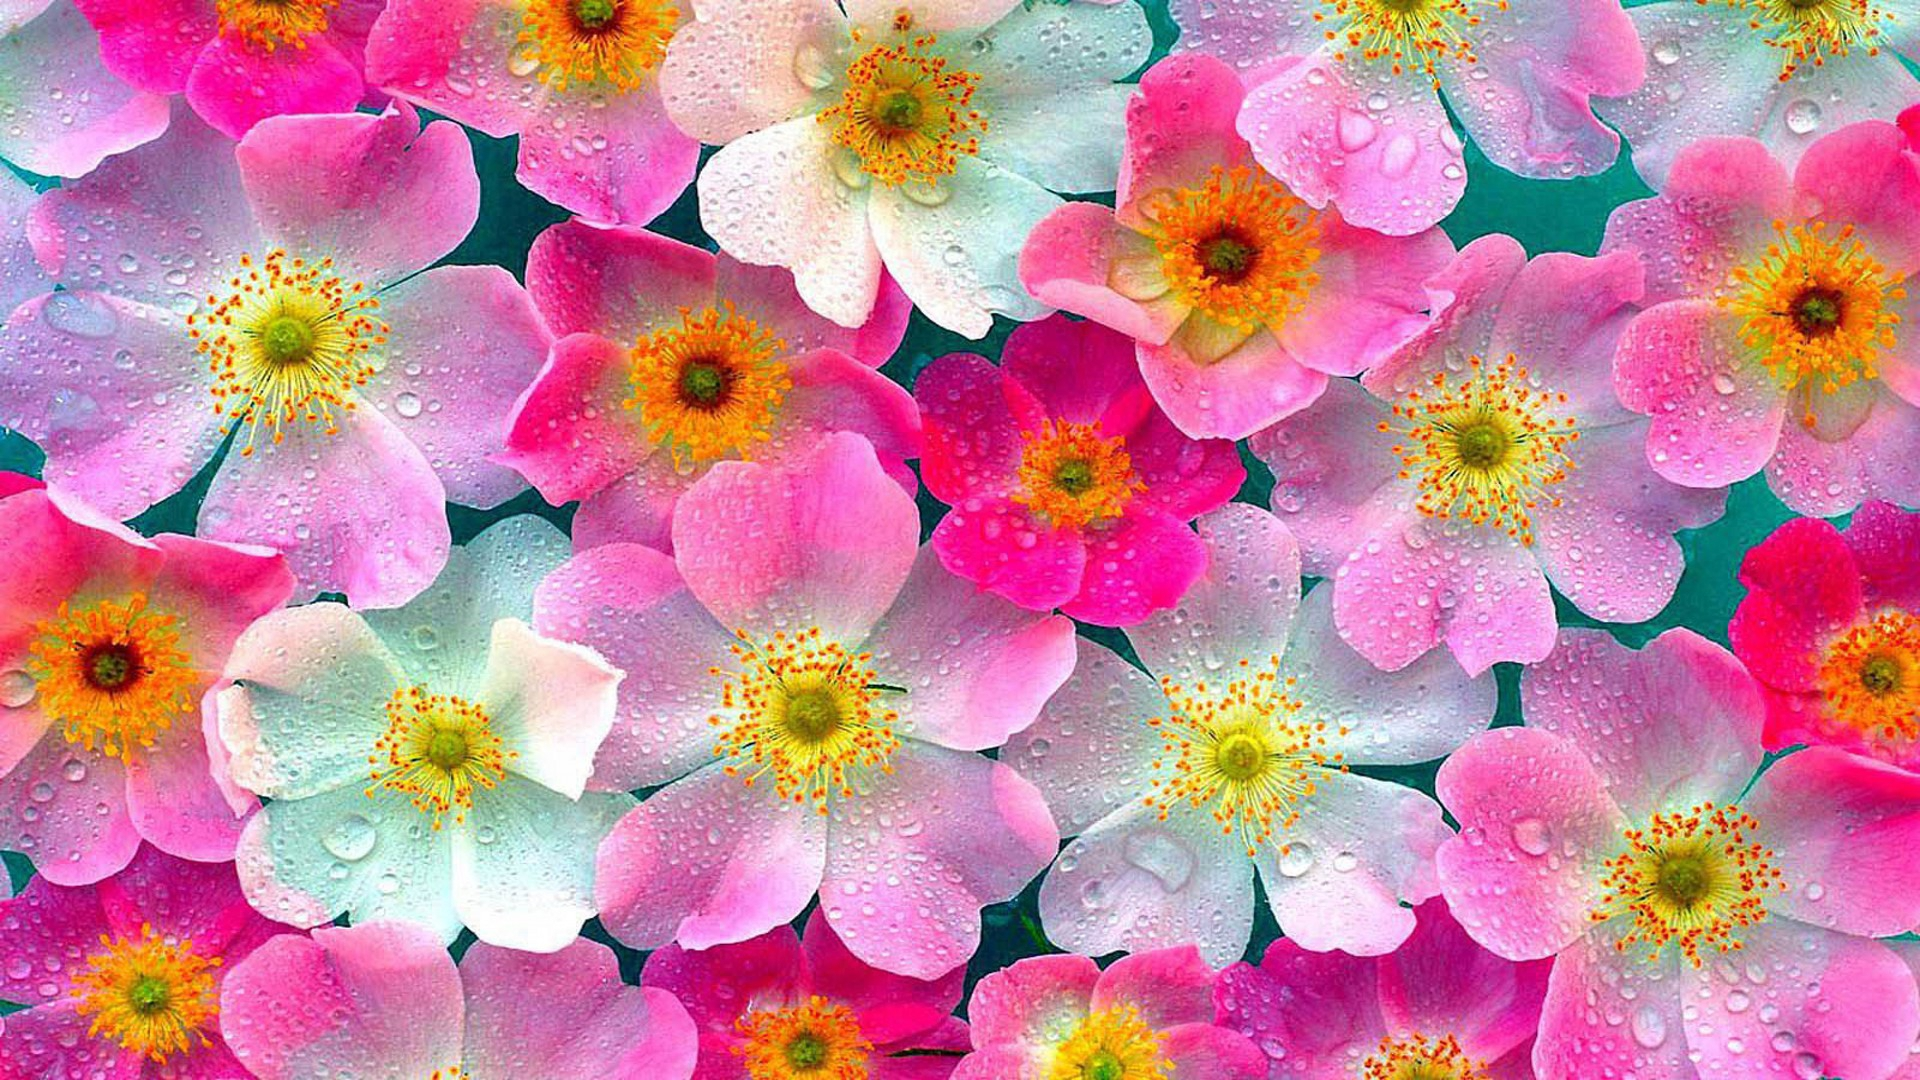 Nature Flowers High Quality Wallpapers